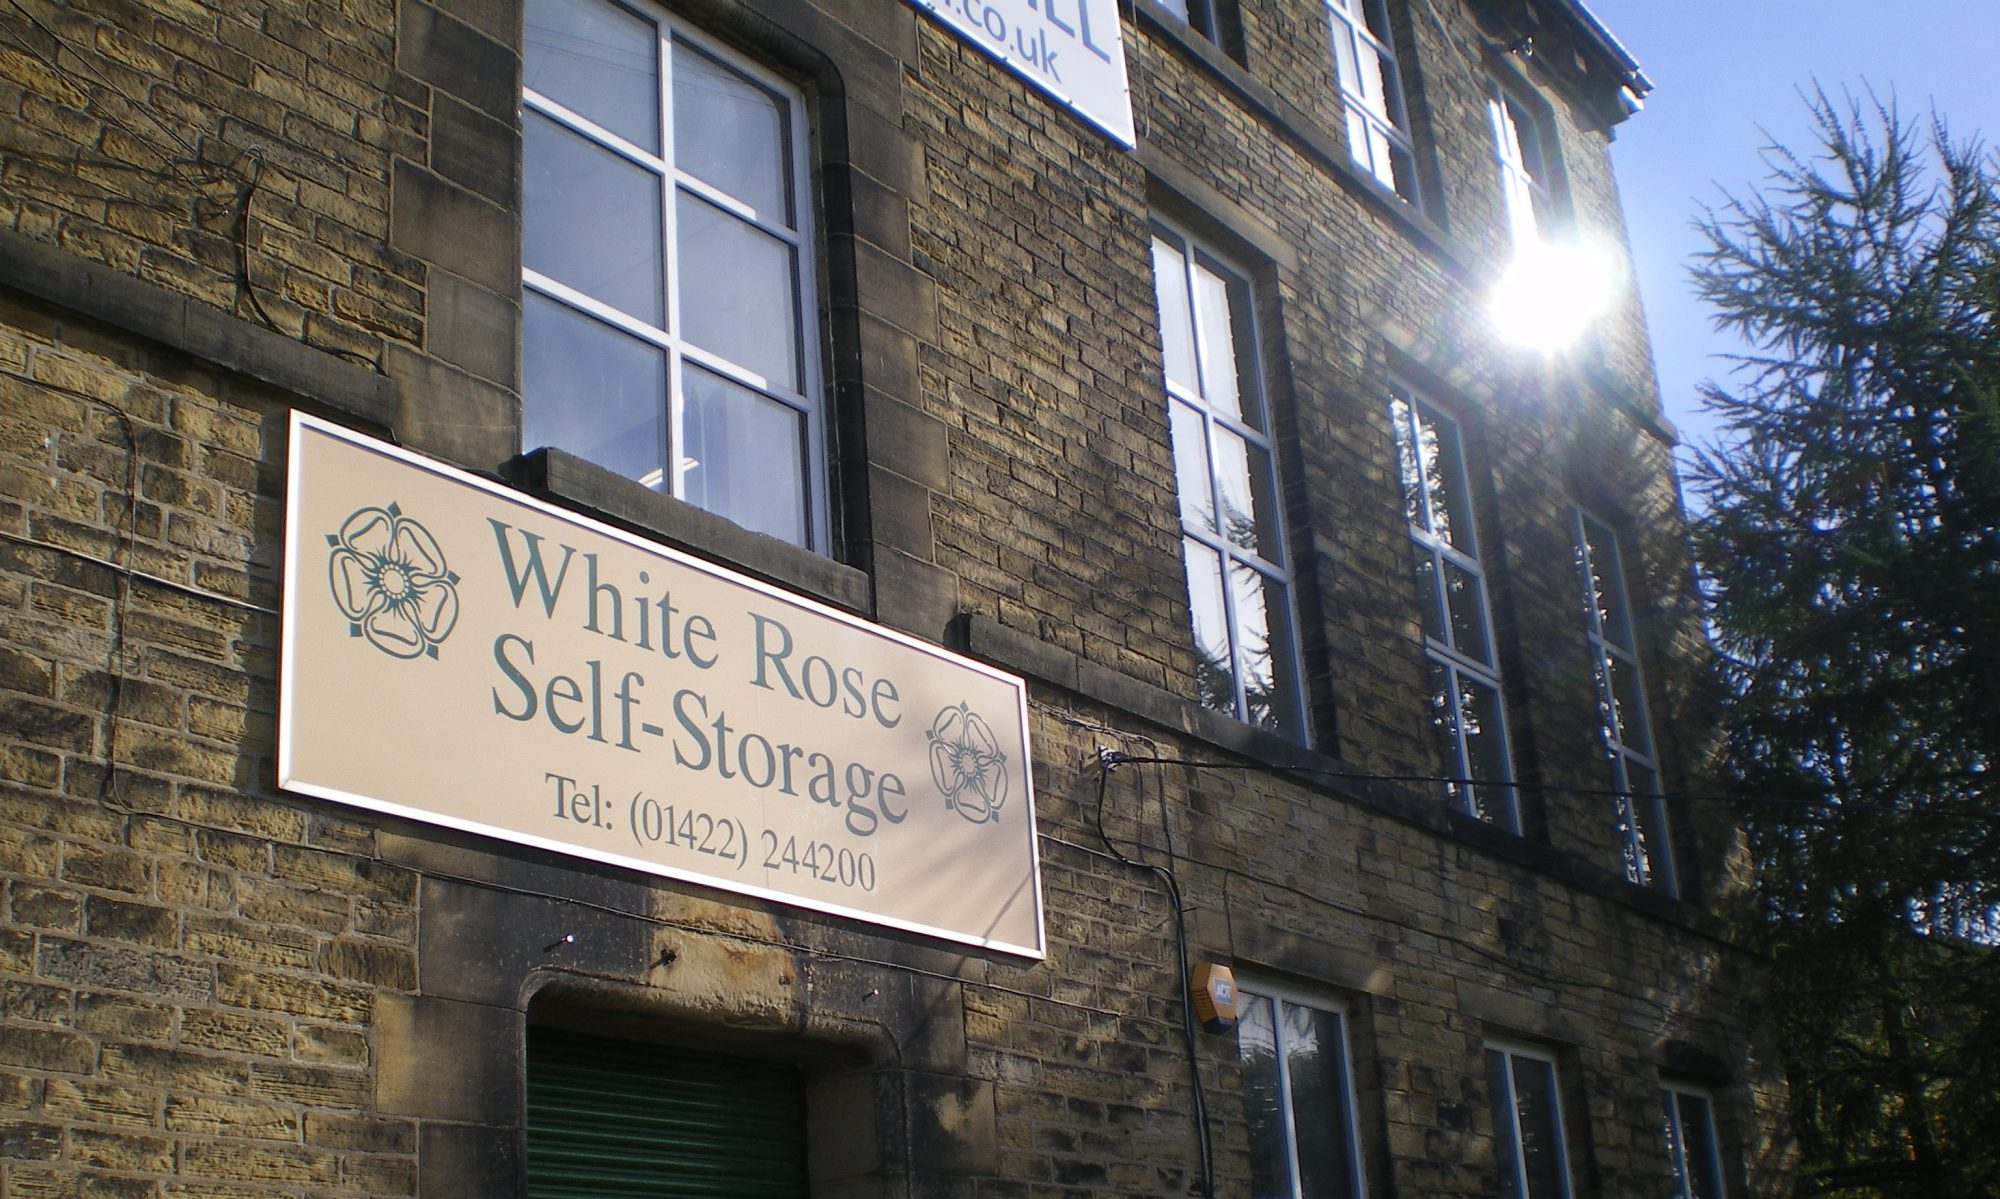 White Rose Self-Storage